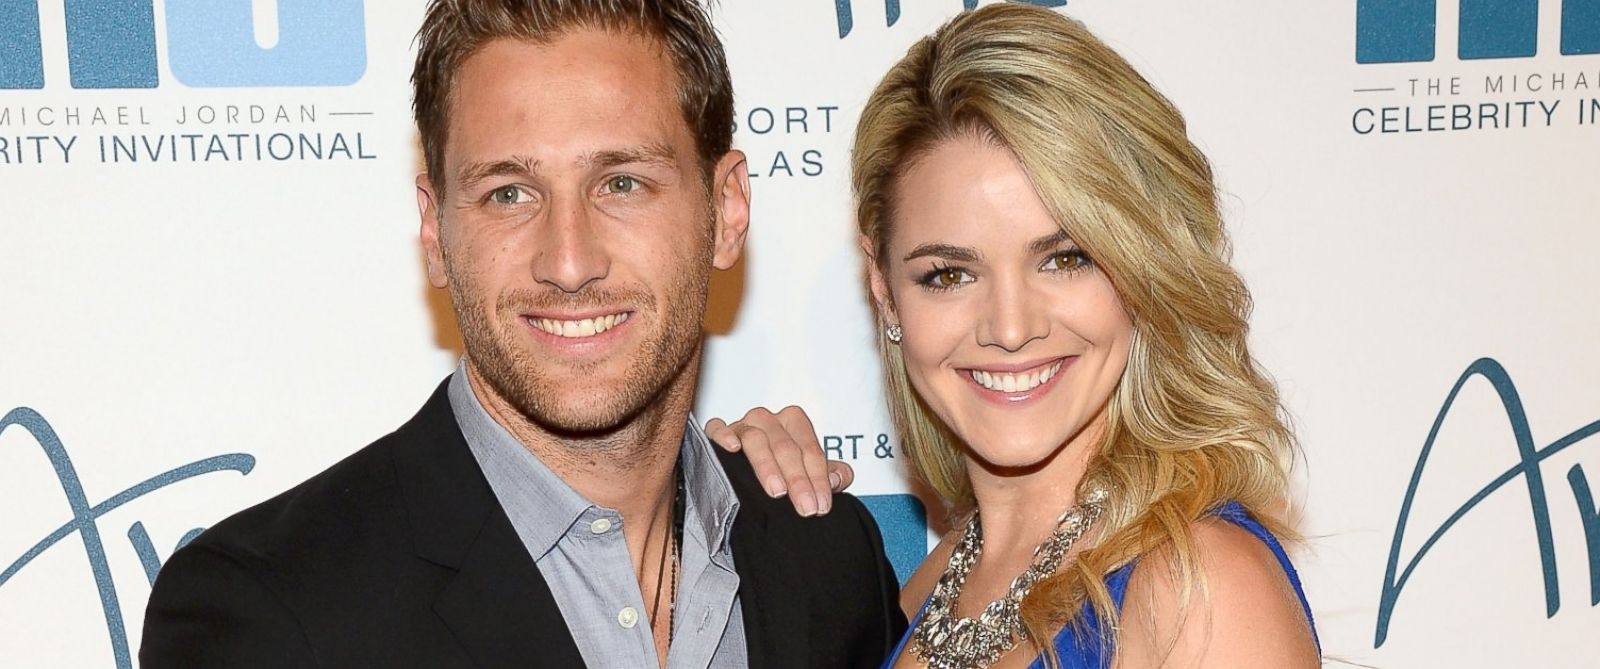 PHOTO: Television personalities Juan Pablo Galavis and Nikki Ferrell arrive at the 13th annual Michael Jordan Celebrity Invitational gala at the ARIA Resort & Casino at CityCenter, April 4, 2014, in Las Vegas.